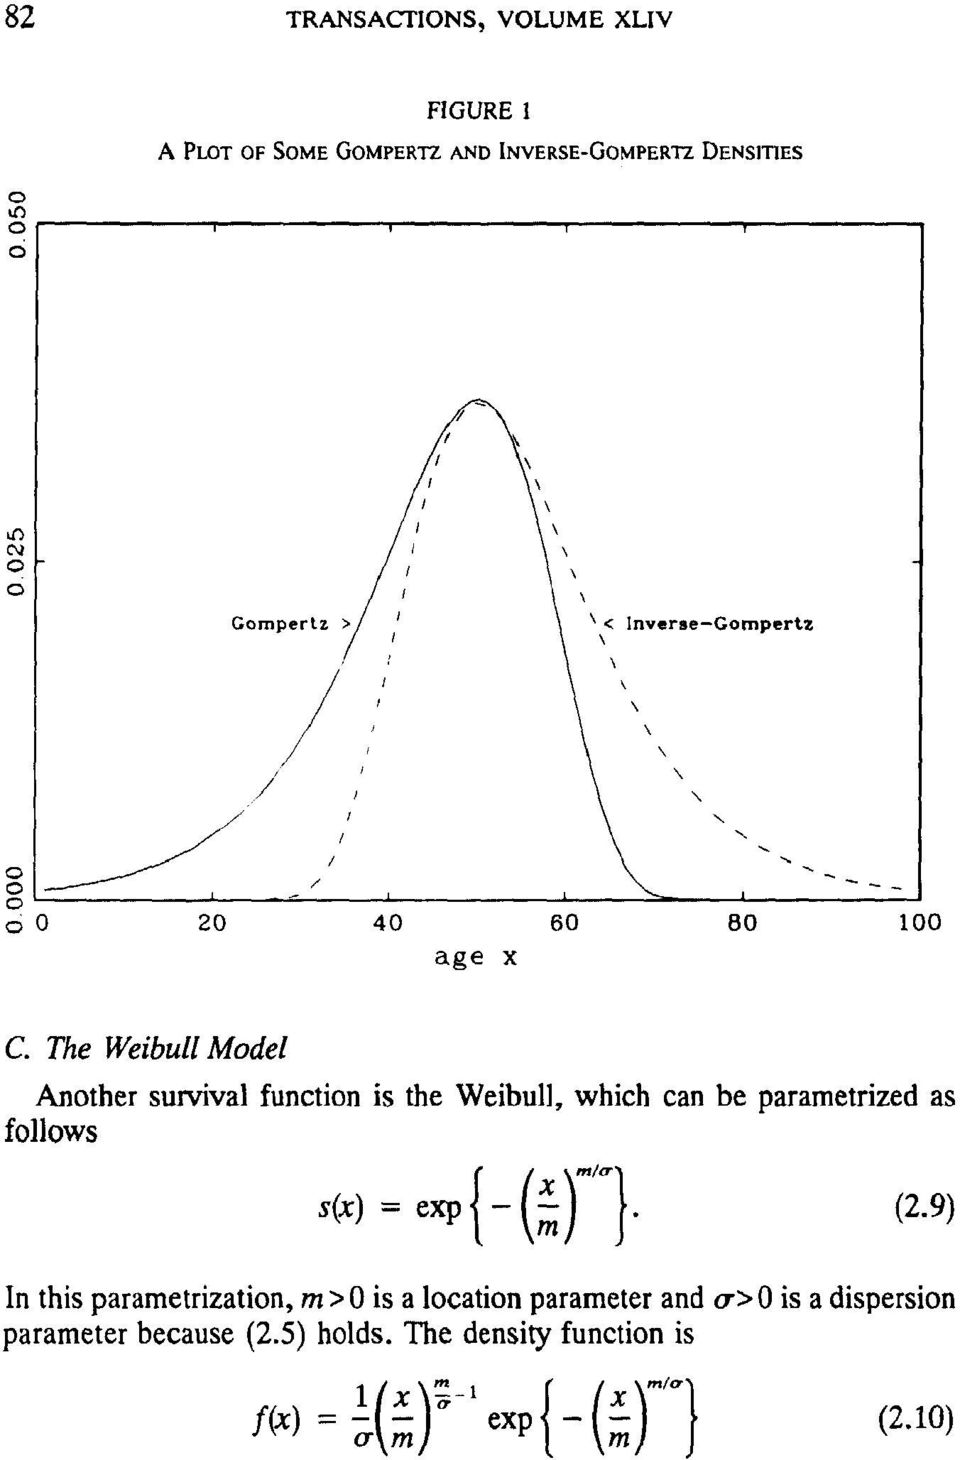 The Weibull Model Another survival function is the Weibull, which can be parametrized as